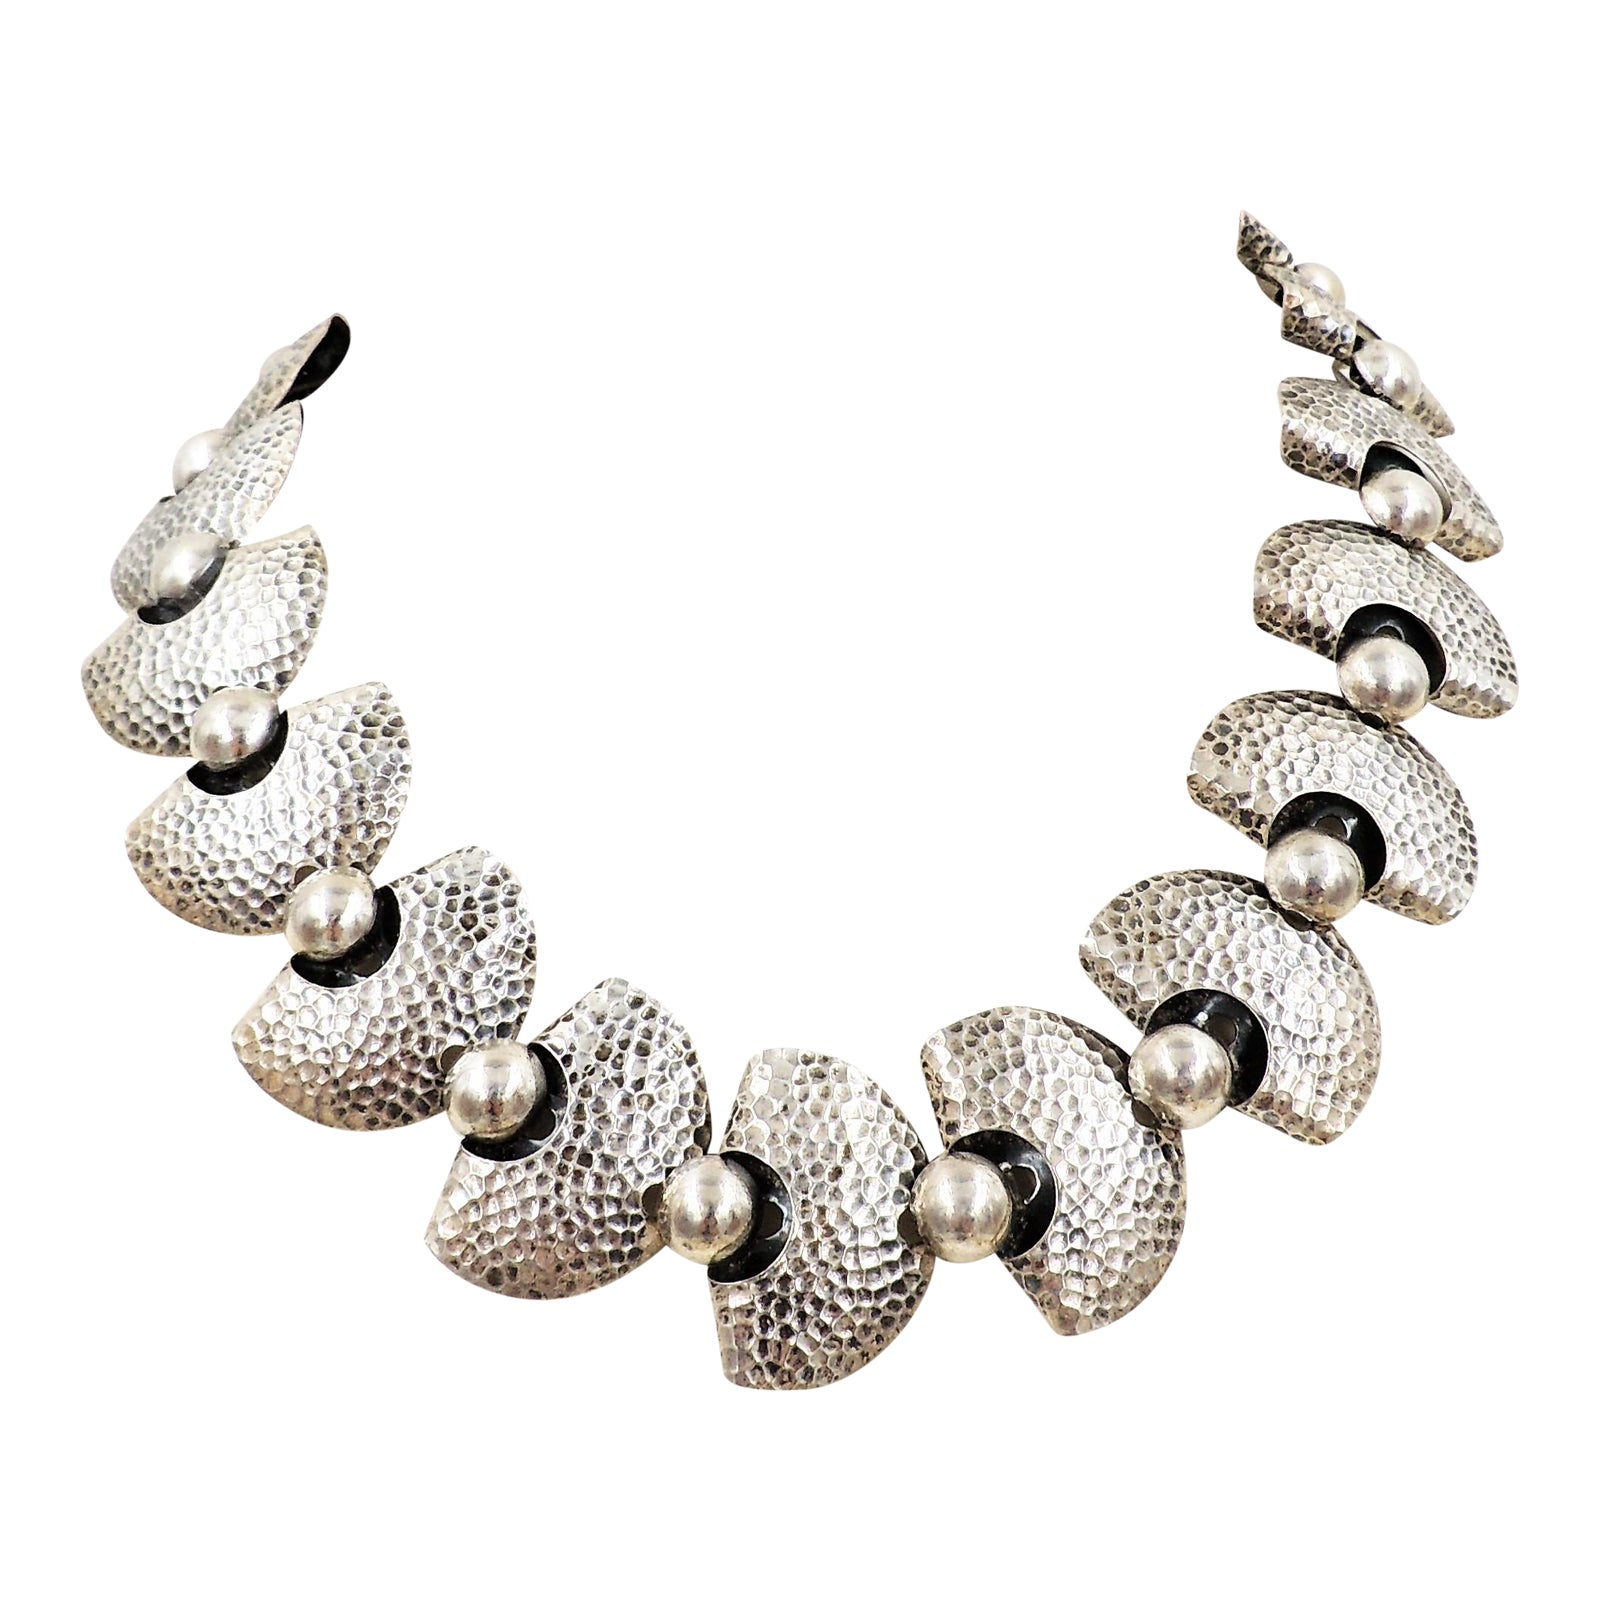 1950s Napier Modernist Silvertone Necklace